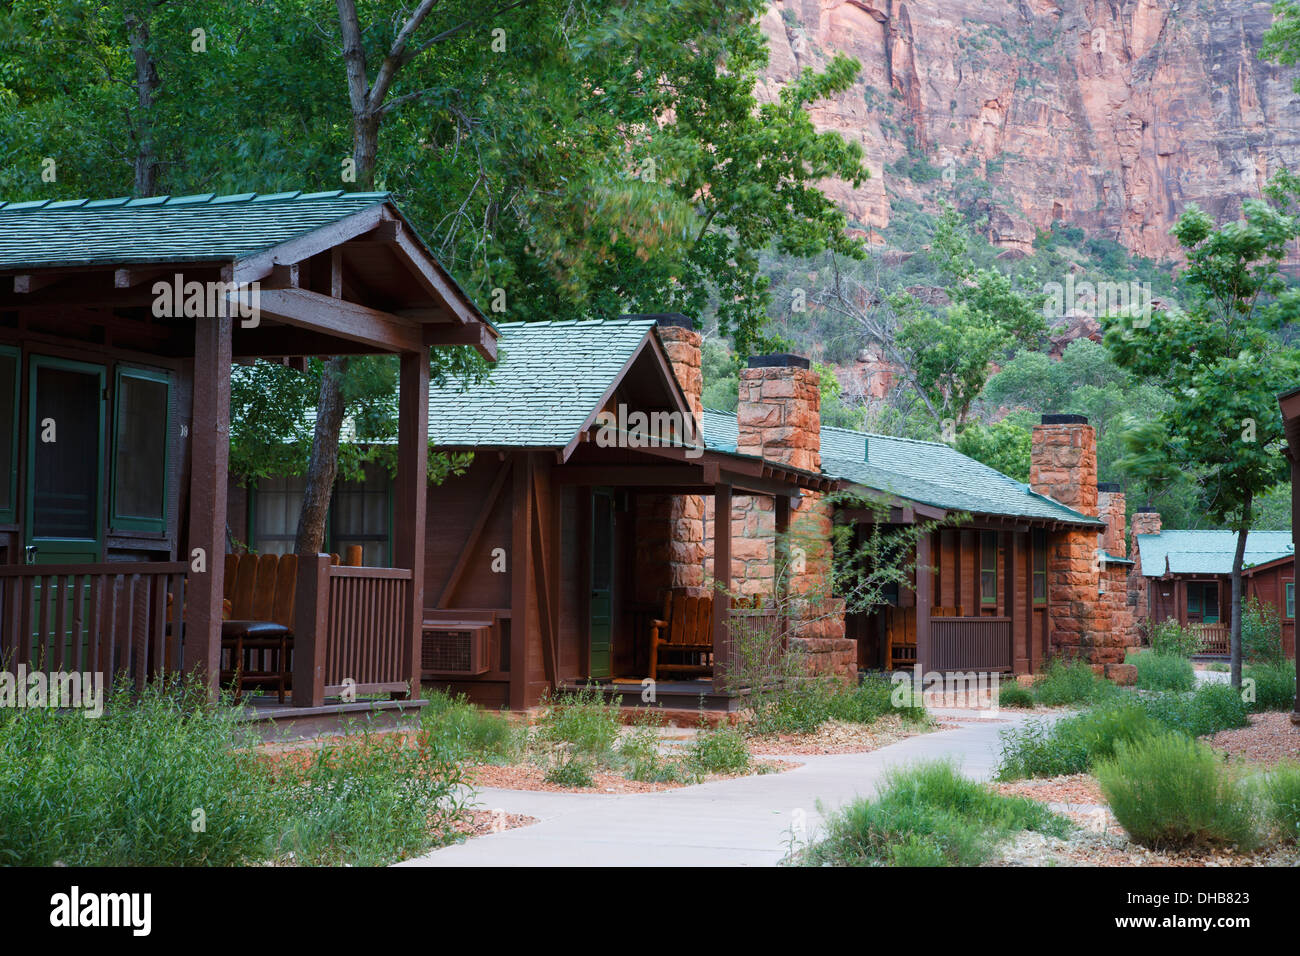 Zion Lodge inside Zion National Park, Utah. - Stock Image